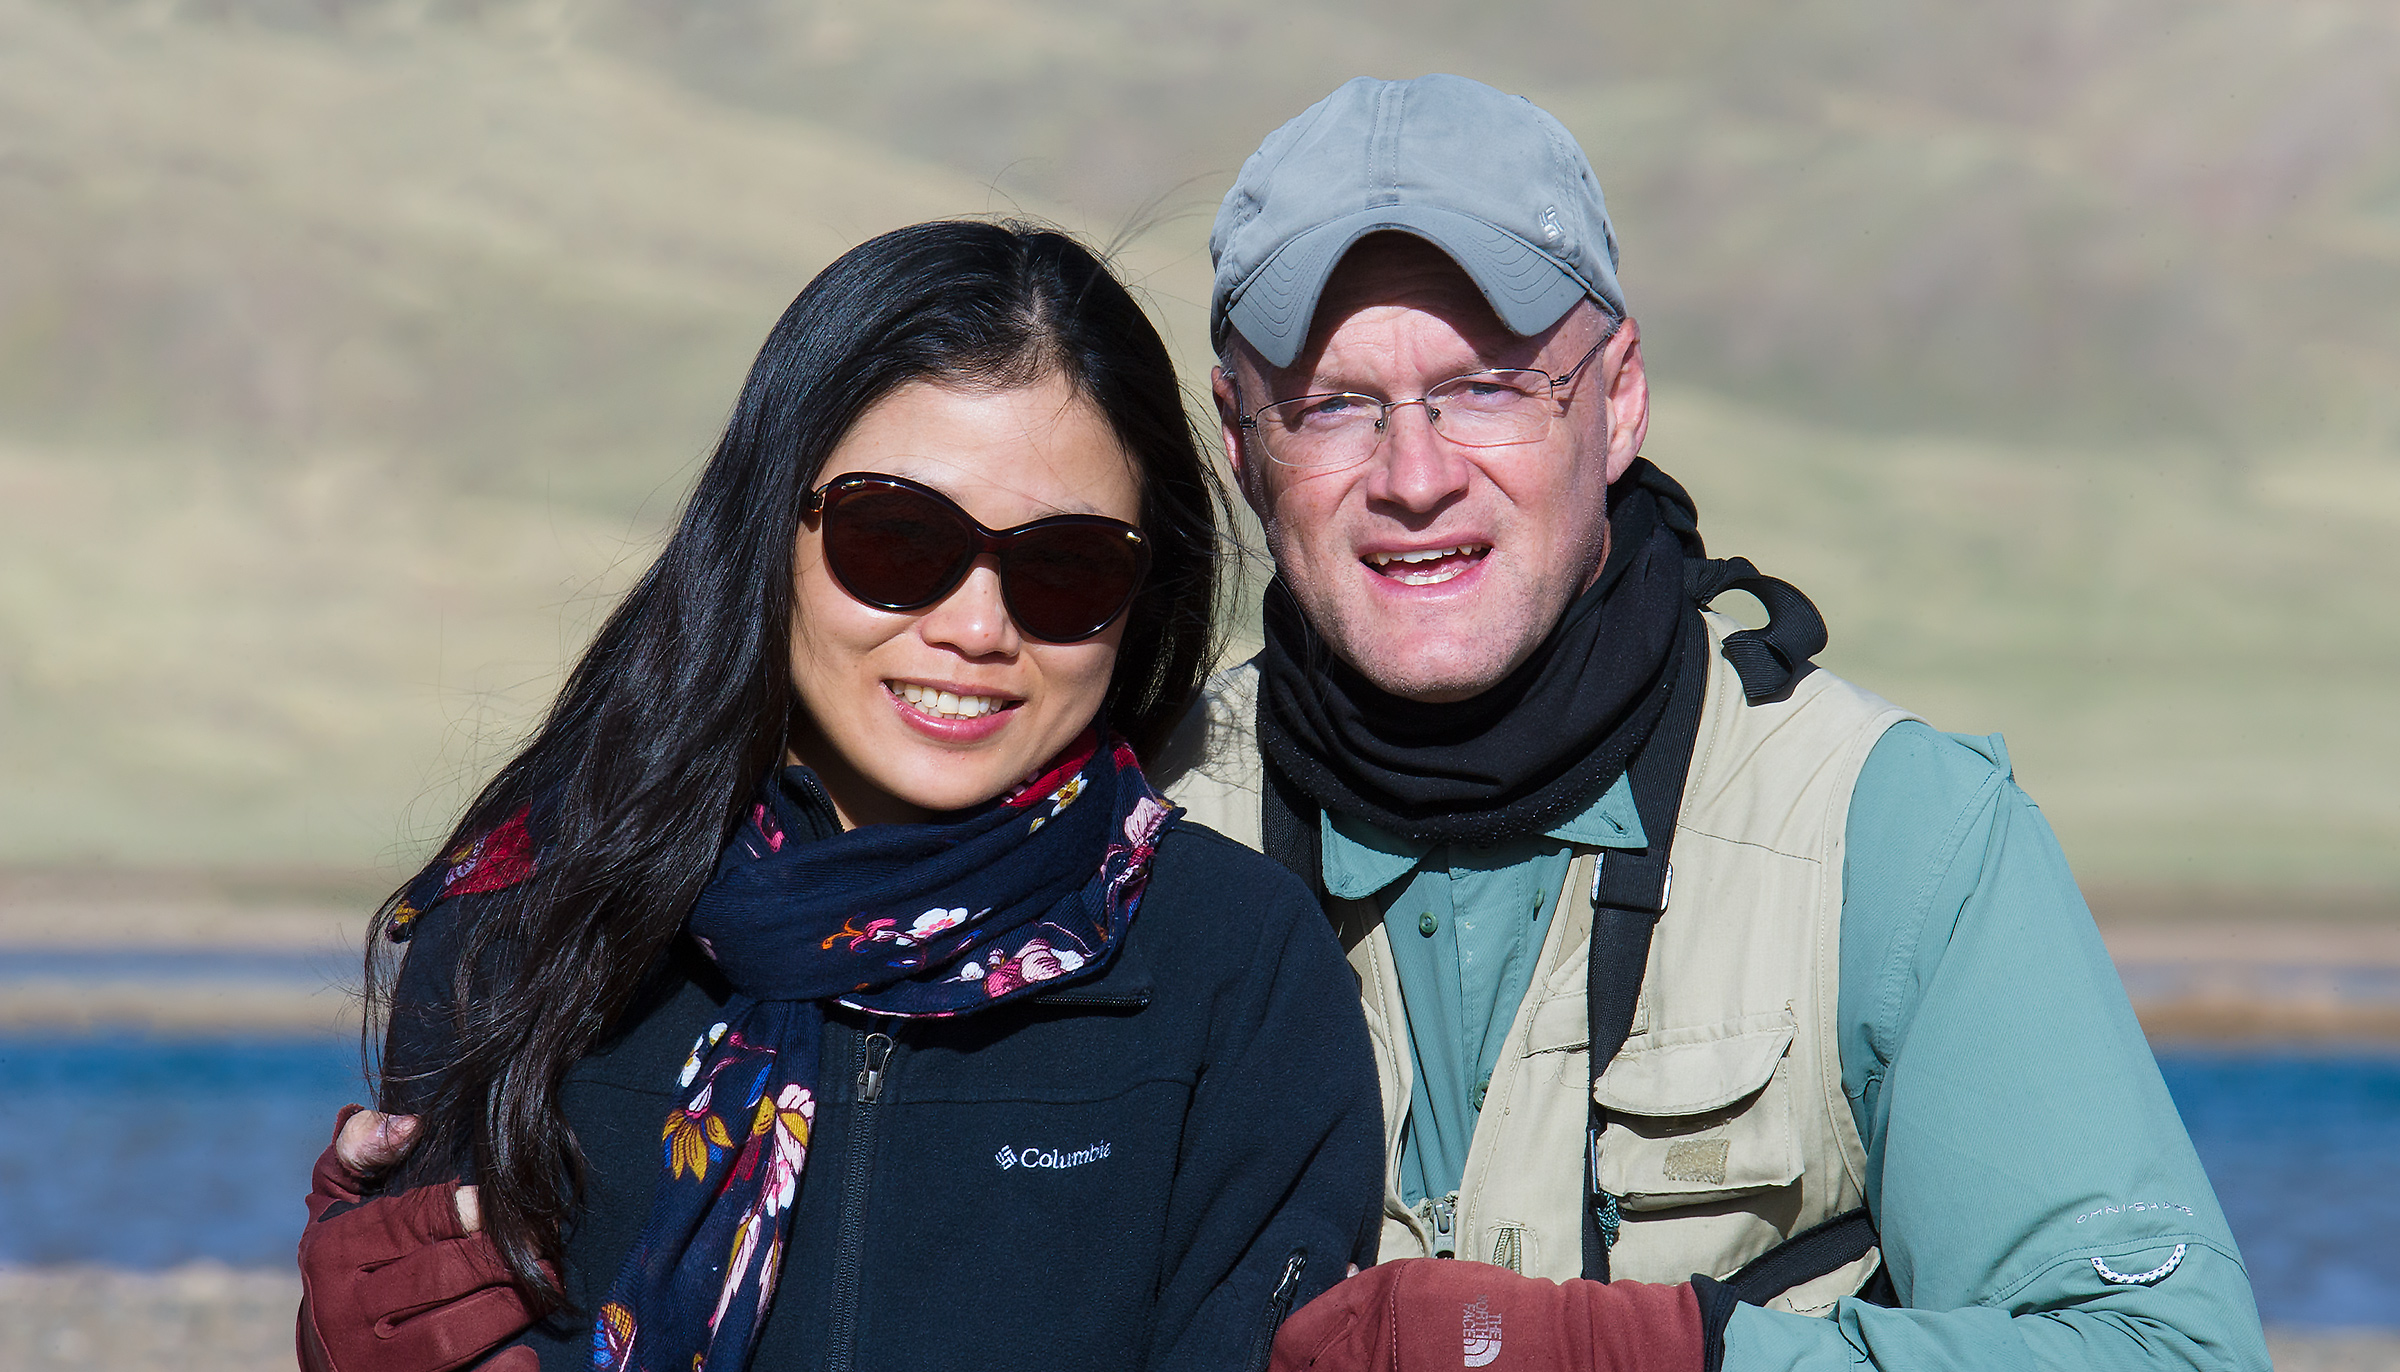 'We Are Family!' sang Sister Sledge back in '79. Here's the Chinese-American adventure team, Elaine Du (L) and yours truly--partners, spouses, family. Eling Lake, where the Yellow River and Chinese culture are born. 3 July 2016. Self-portrait taken with my Nikon D3S and 600 mm F/4 lens.